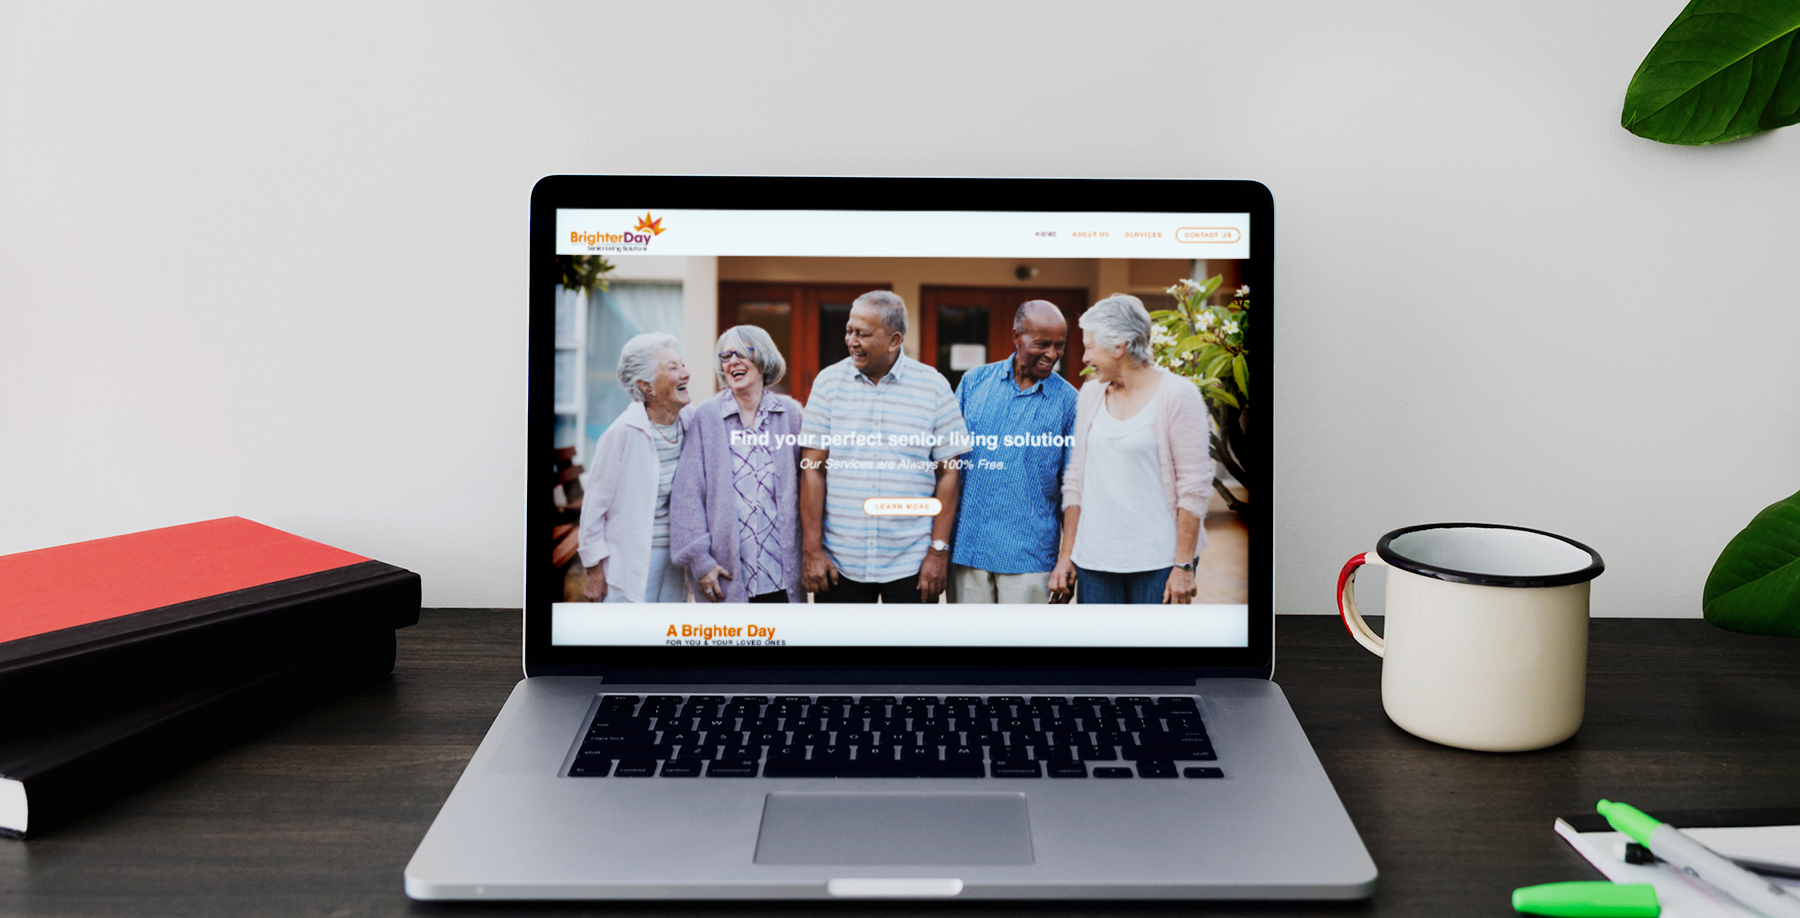 BrighterDay Senior Living Solutions laptop home page